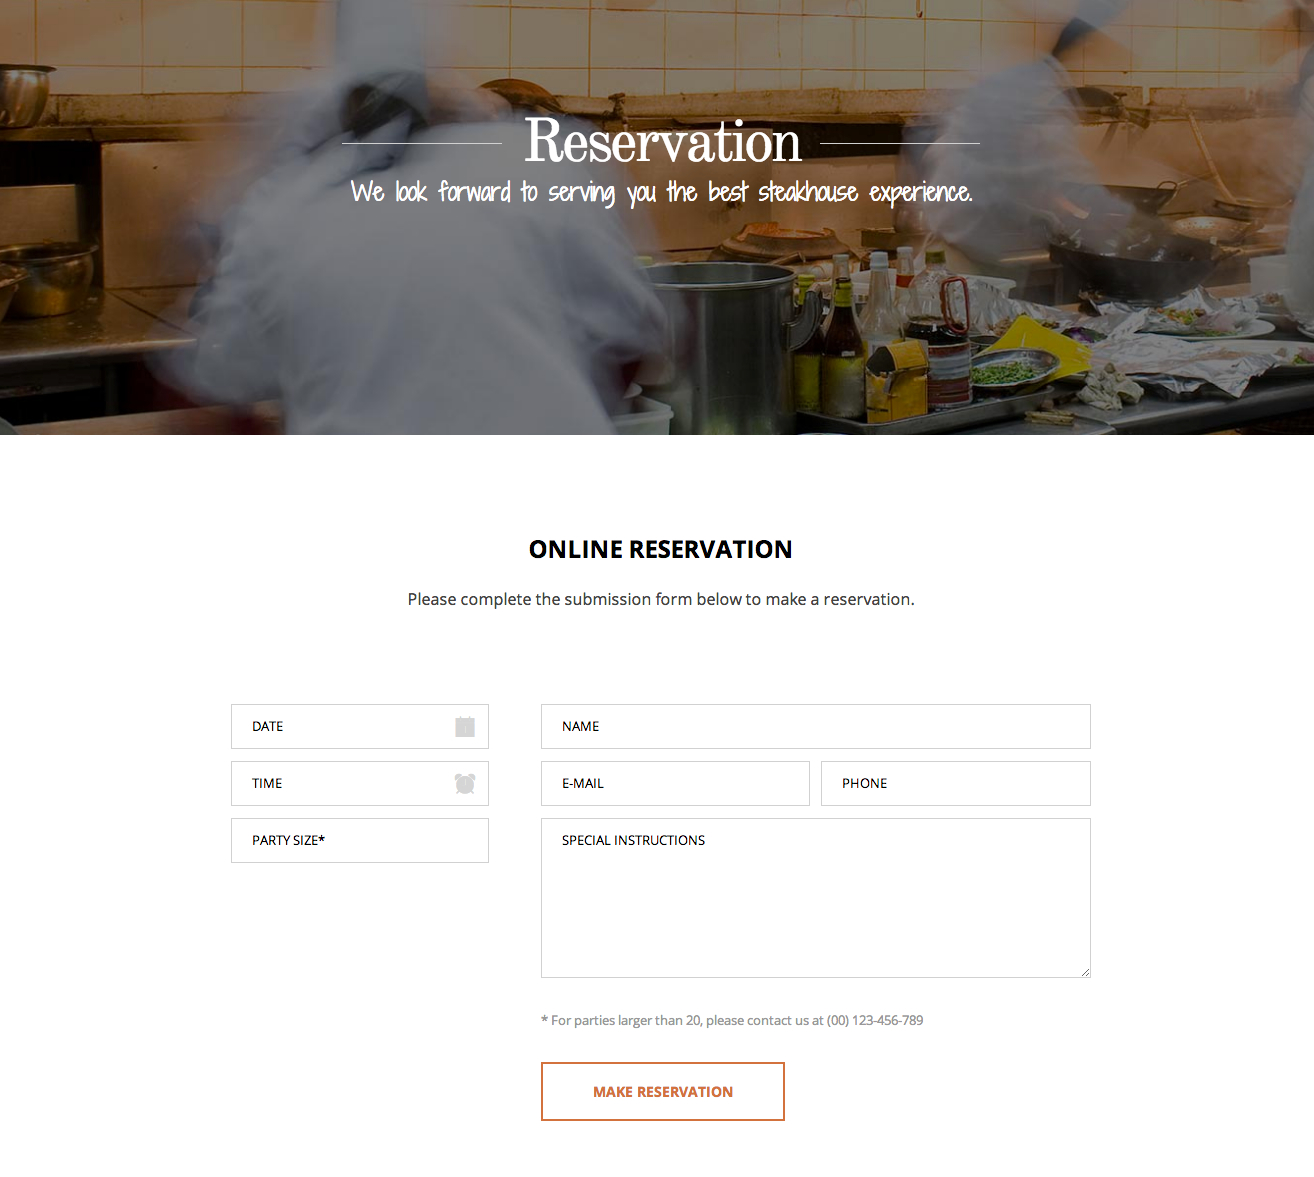 Reservation subpage